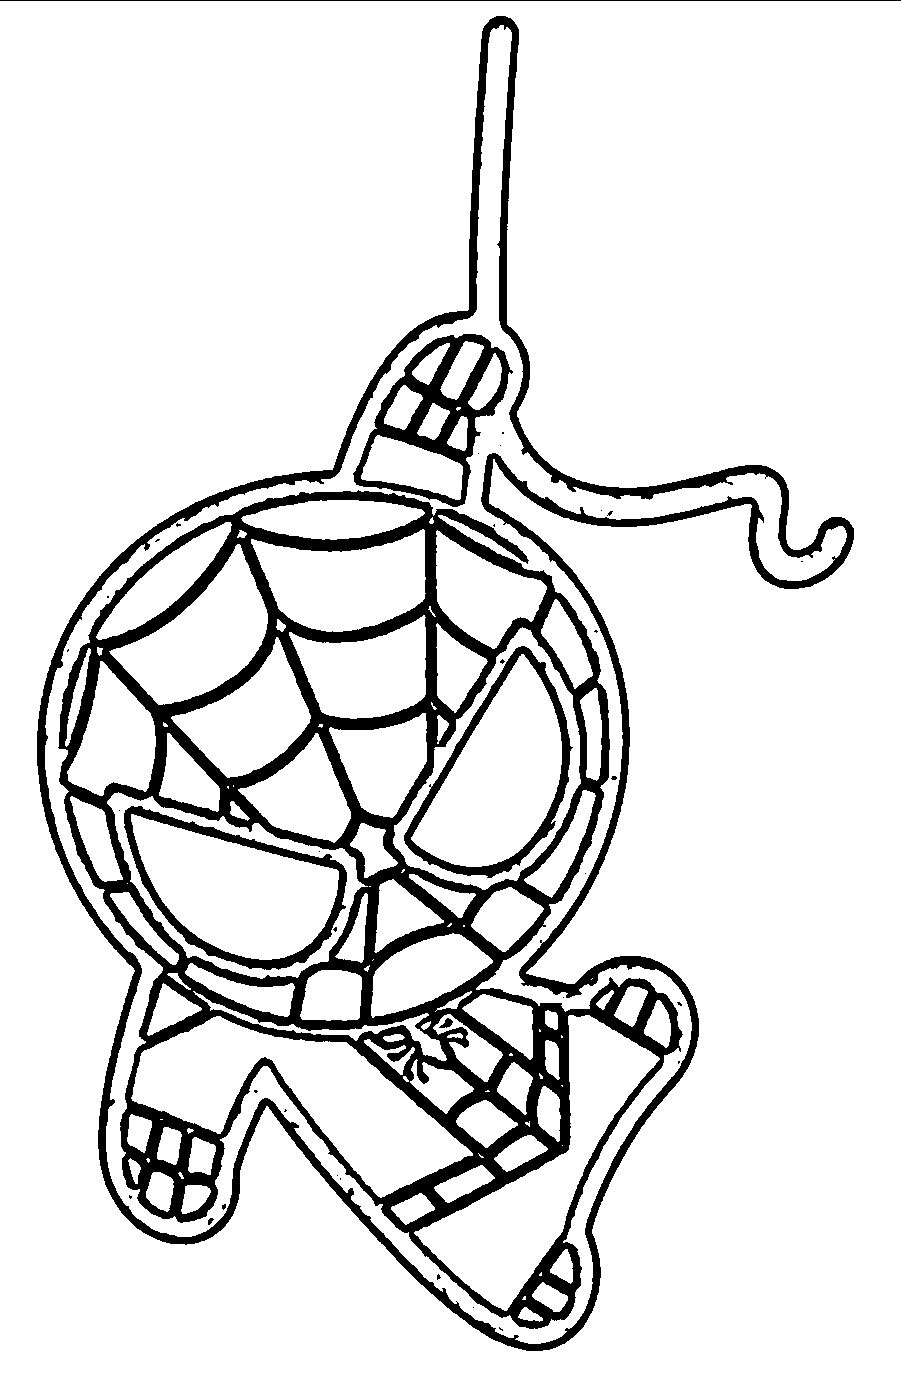 Baby Spiderman Coloring Pages At Getdrawings Free Download